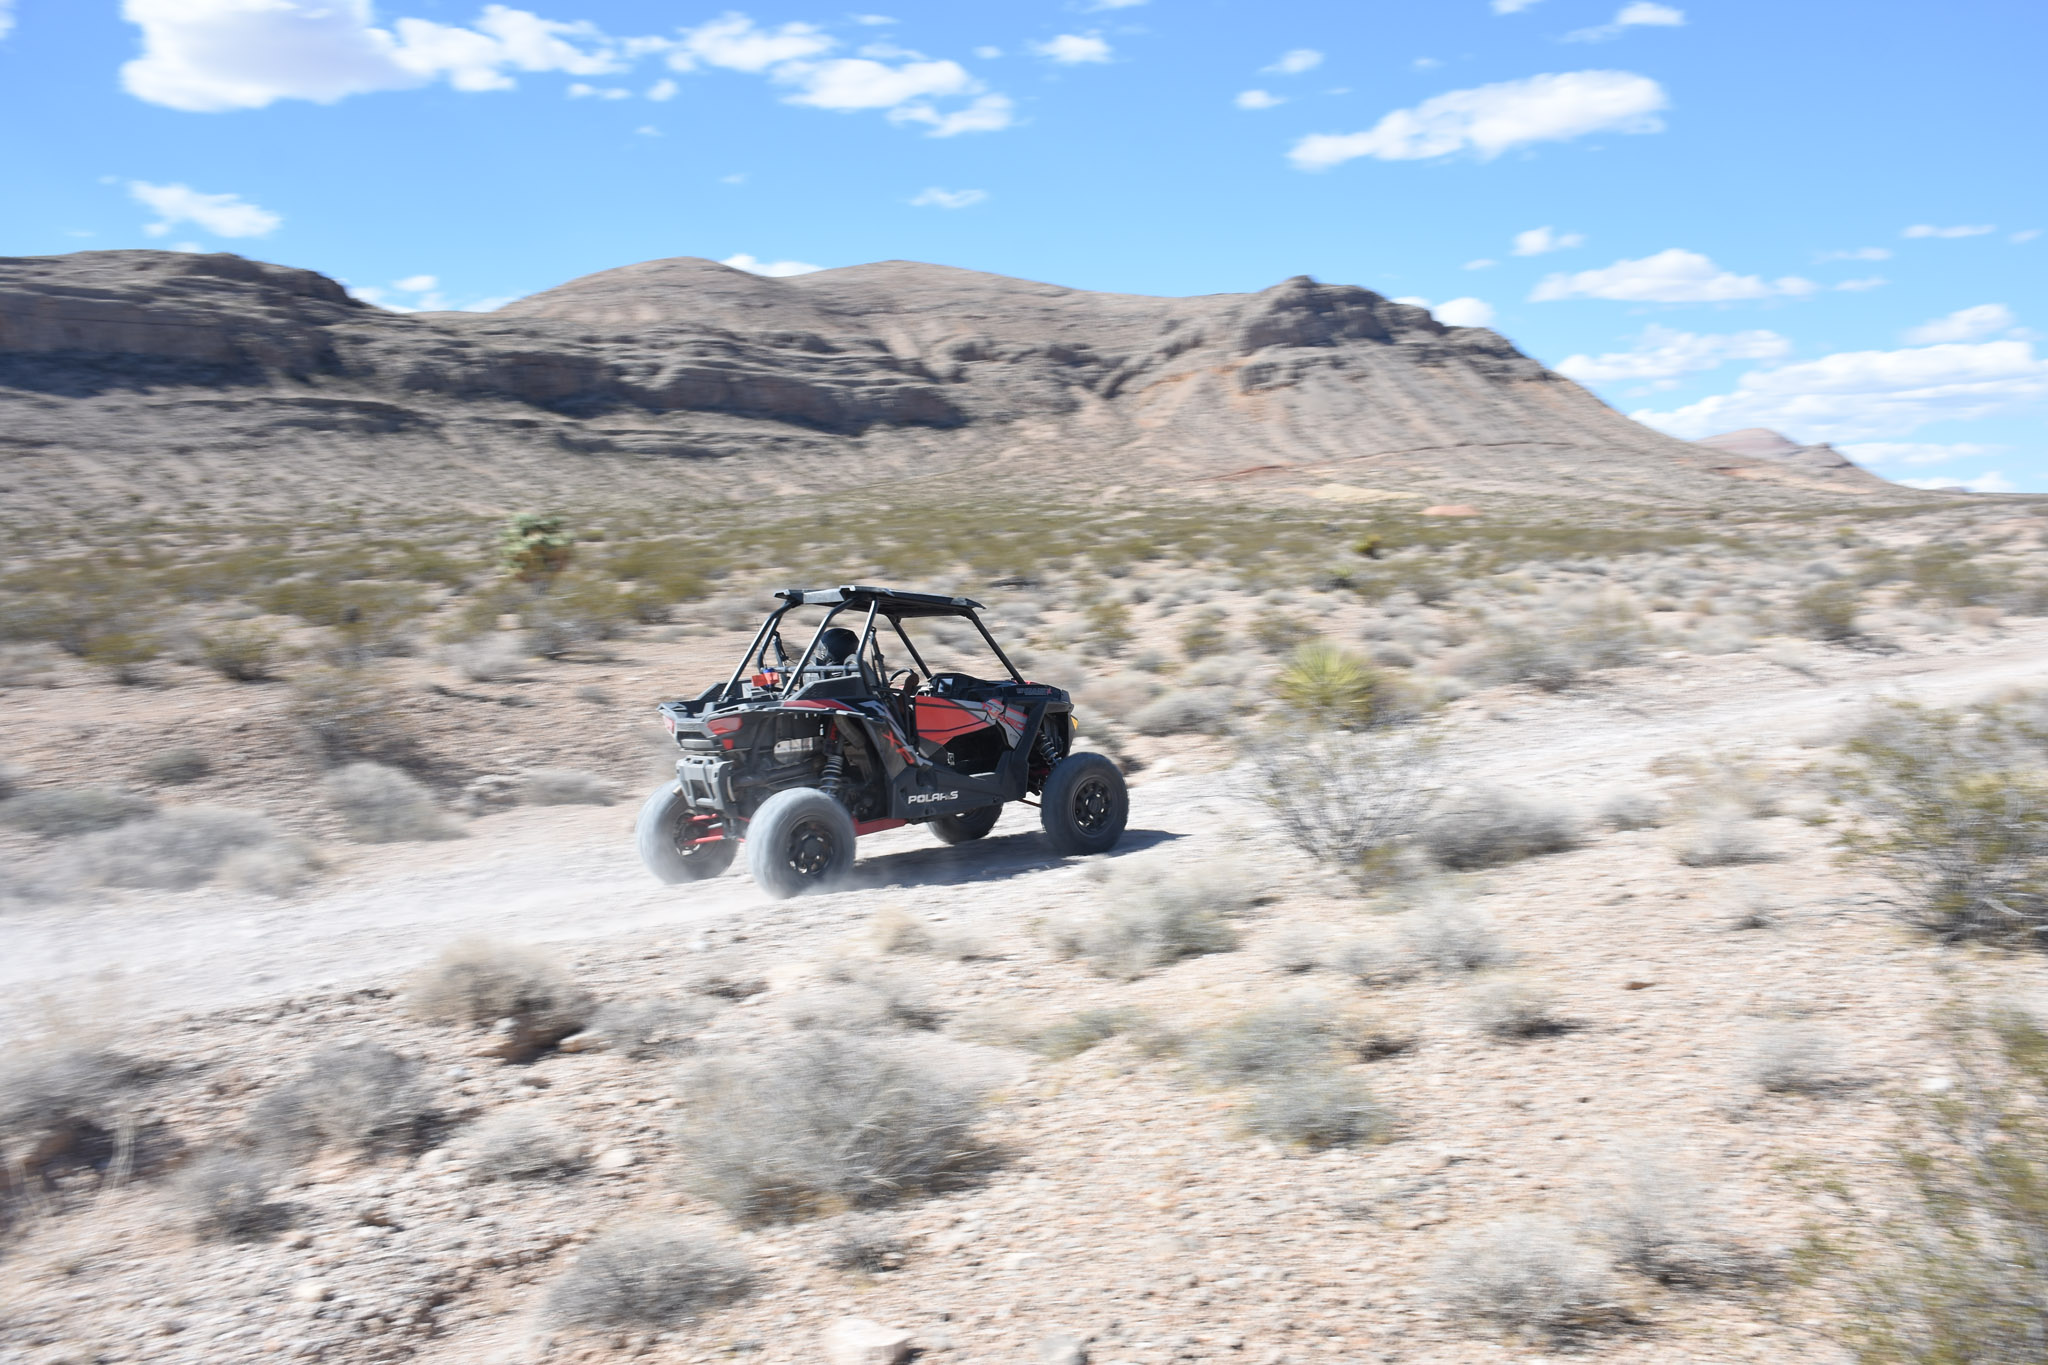 Crossing (Part of) the Mojave Desert at 76 MPH in the